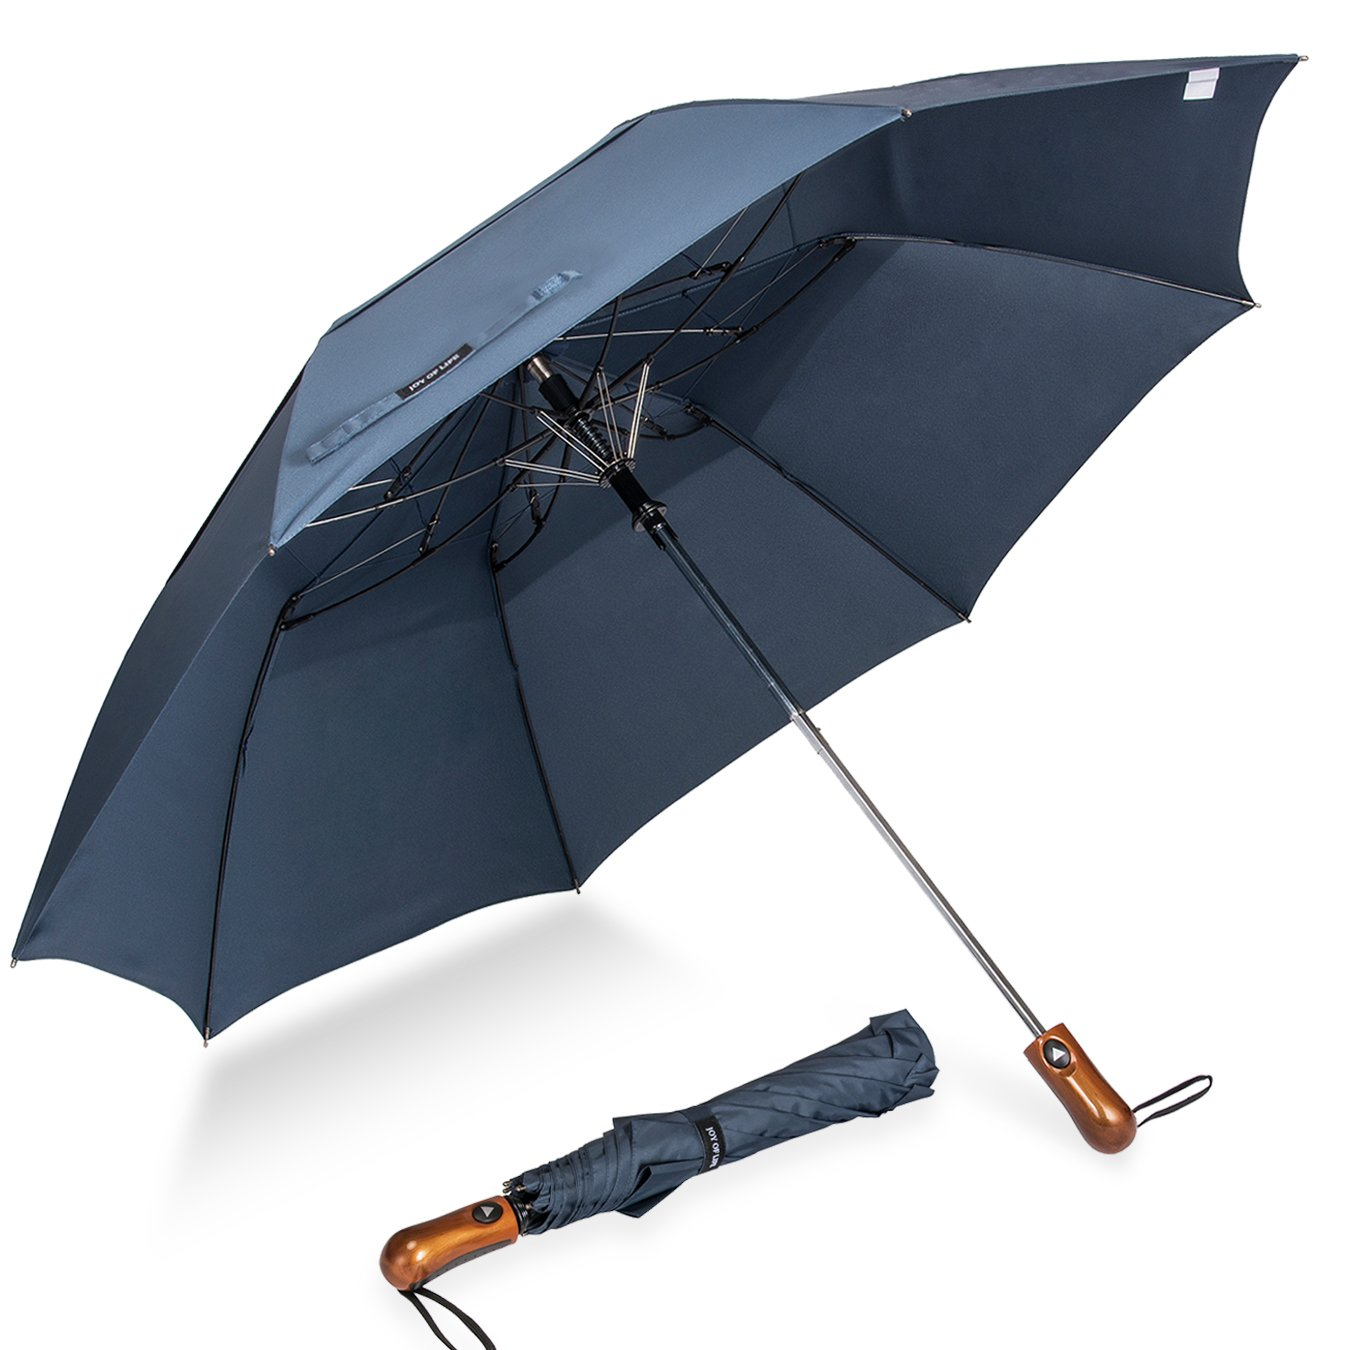 ZOMAKE Automatic Open Compact Umbrella for Women Men, Lightweight Windproof Umbrella, Double Canopy Parasol with UV Protection